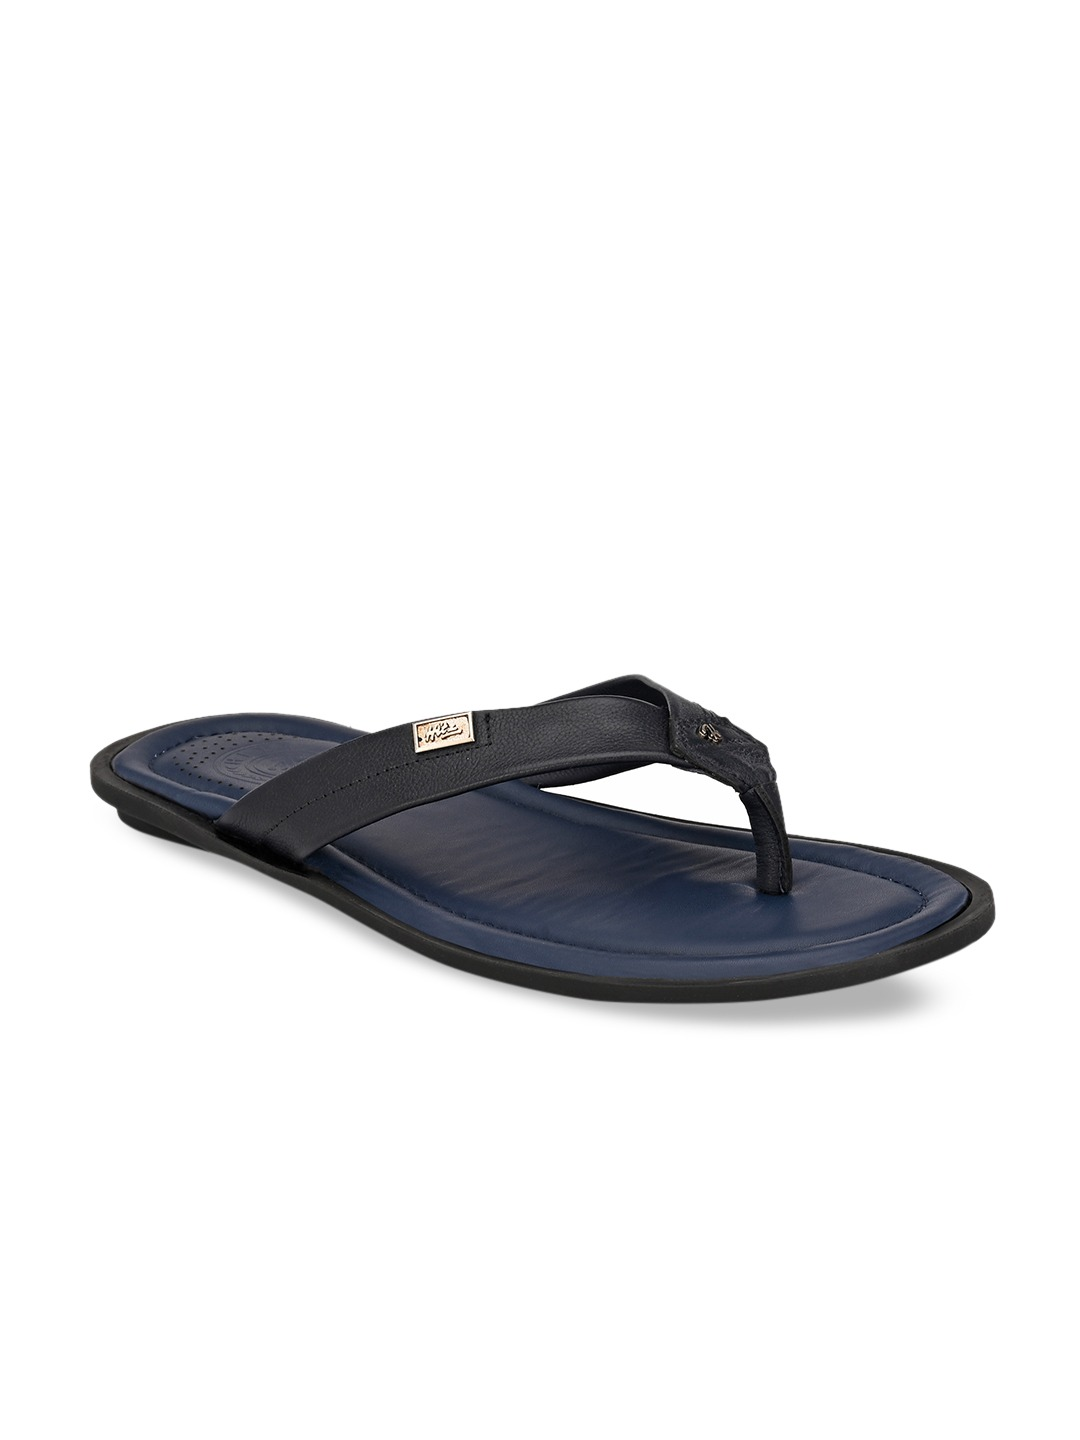 Navy Blue Solid Leather Comfort Sandals